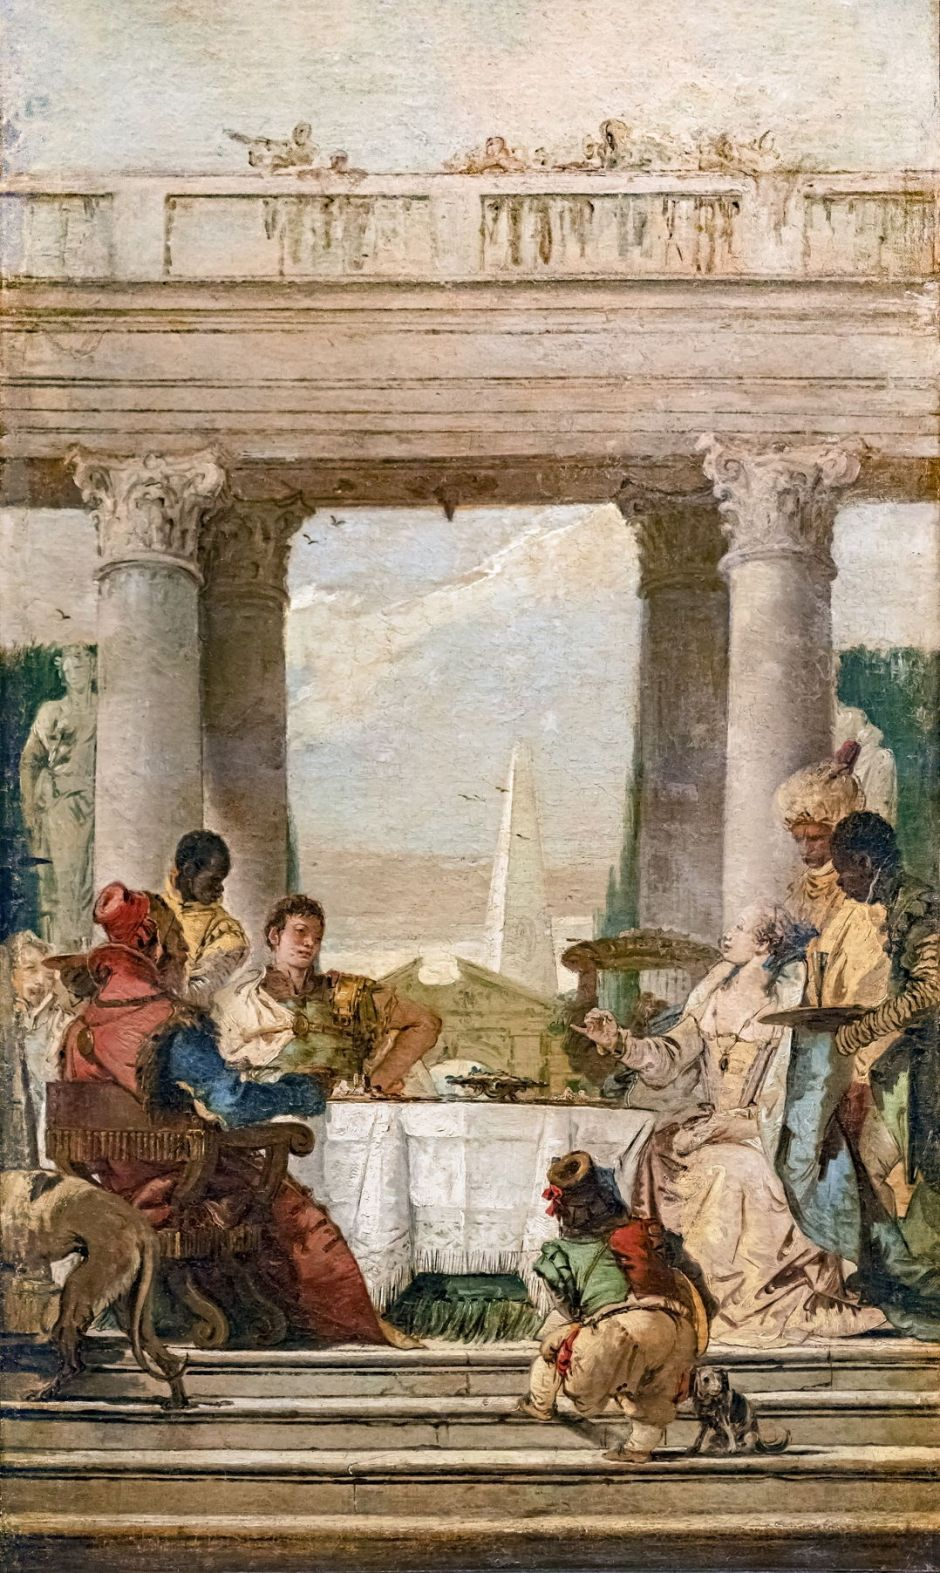 The Banquet of Cleopatra (Tiepolo paintings) - Stockholms universitet